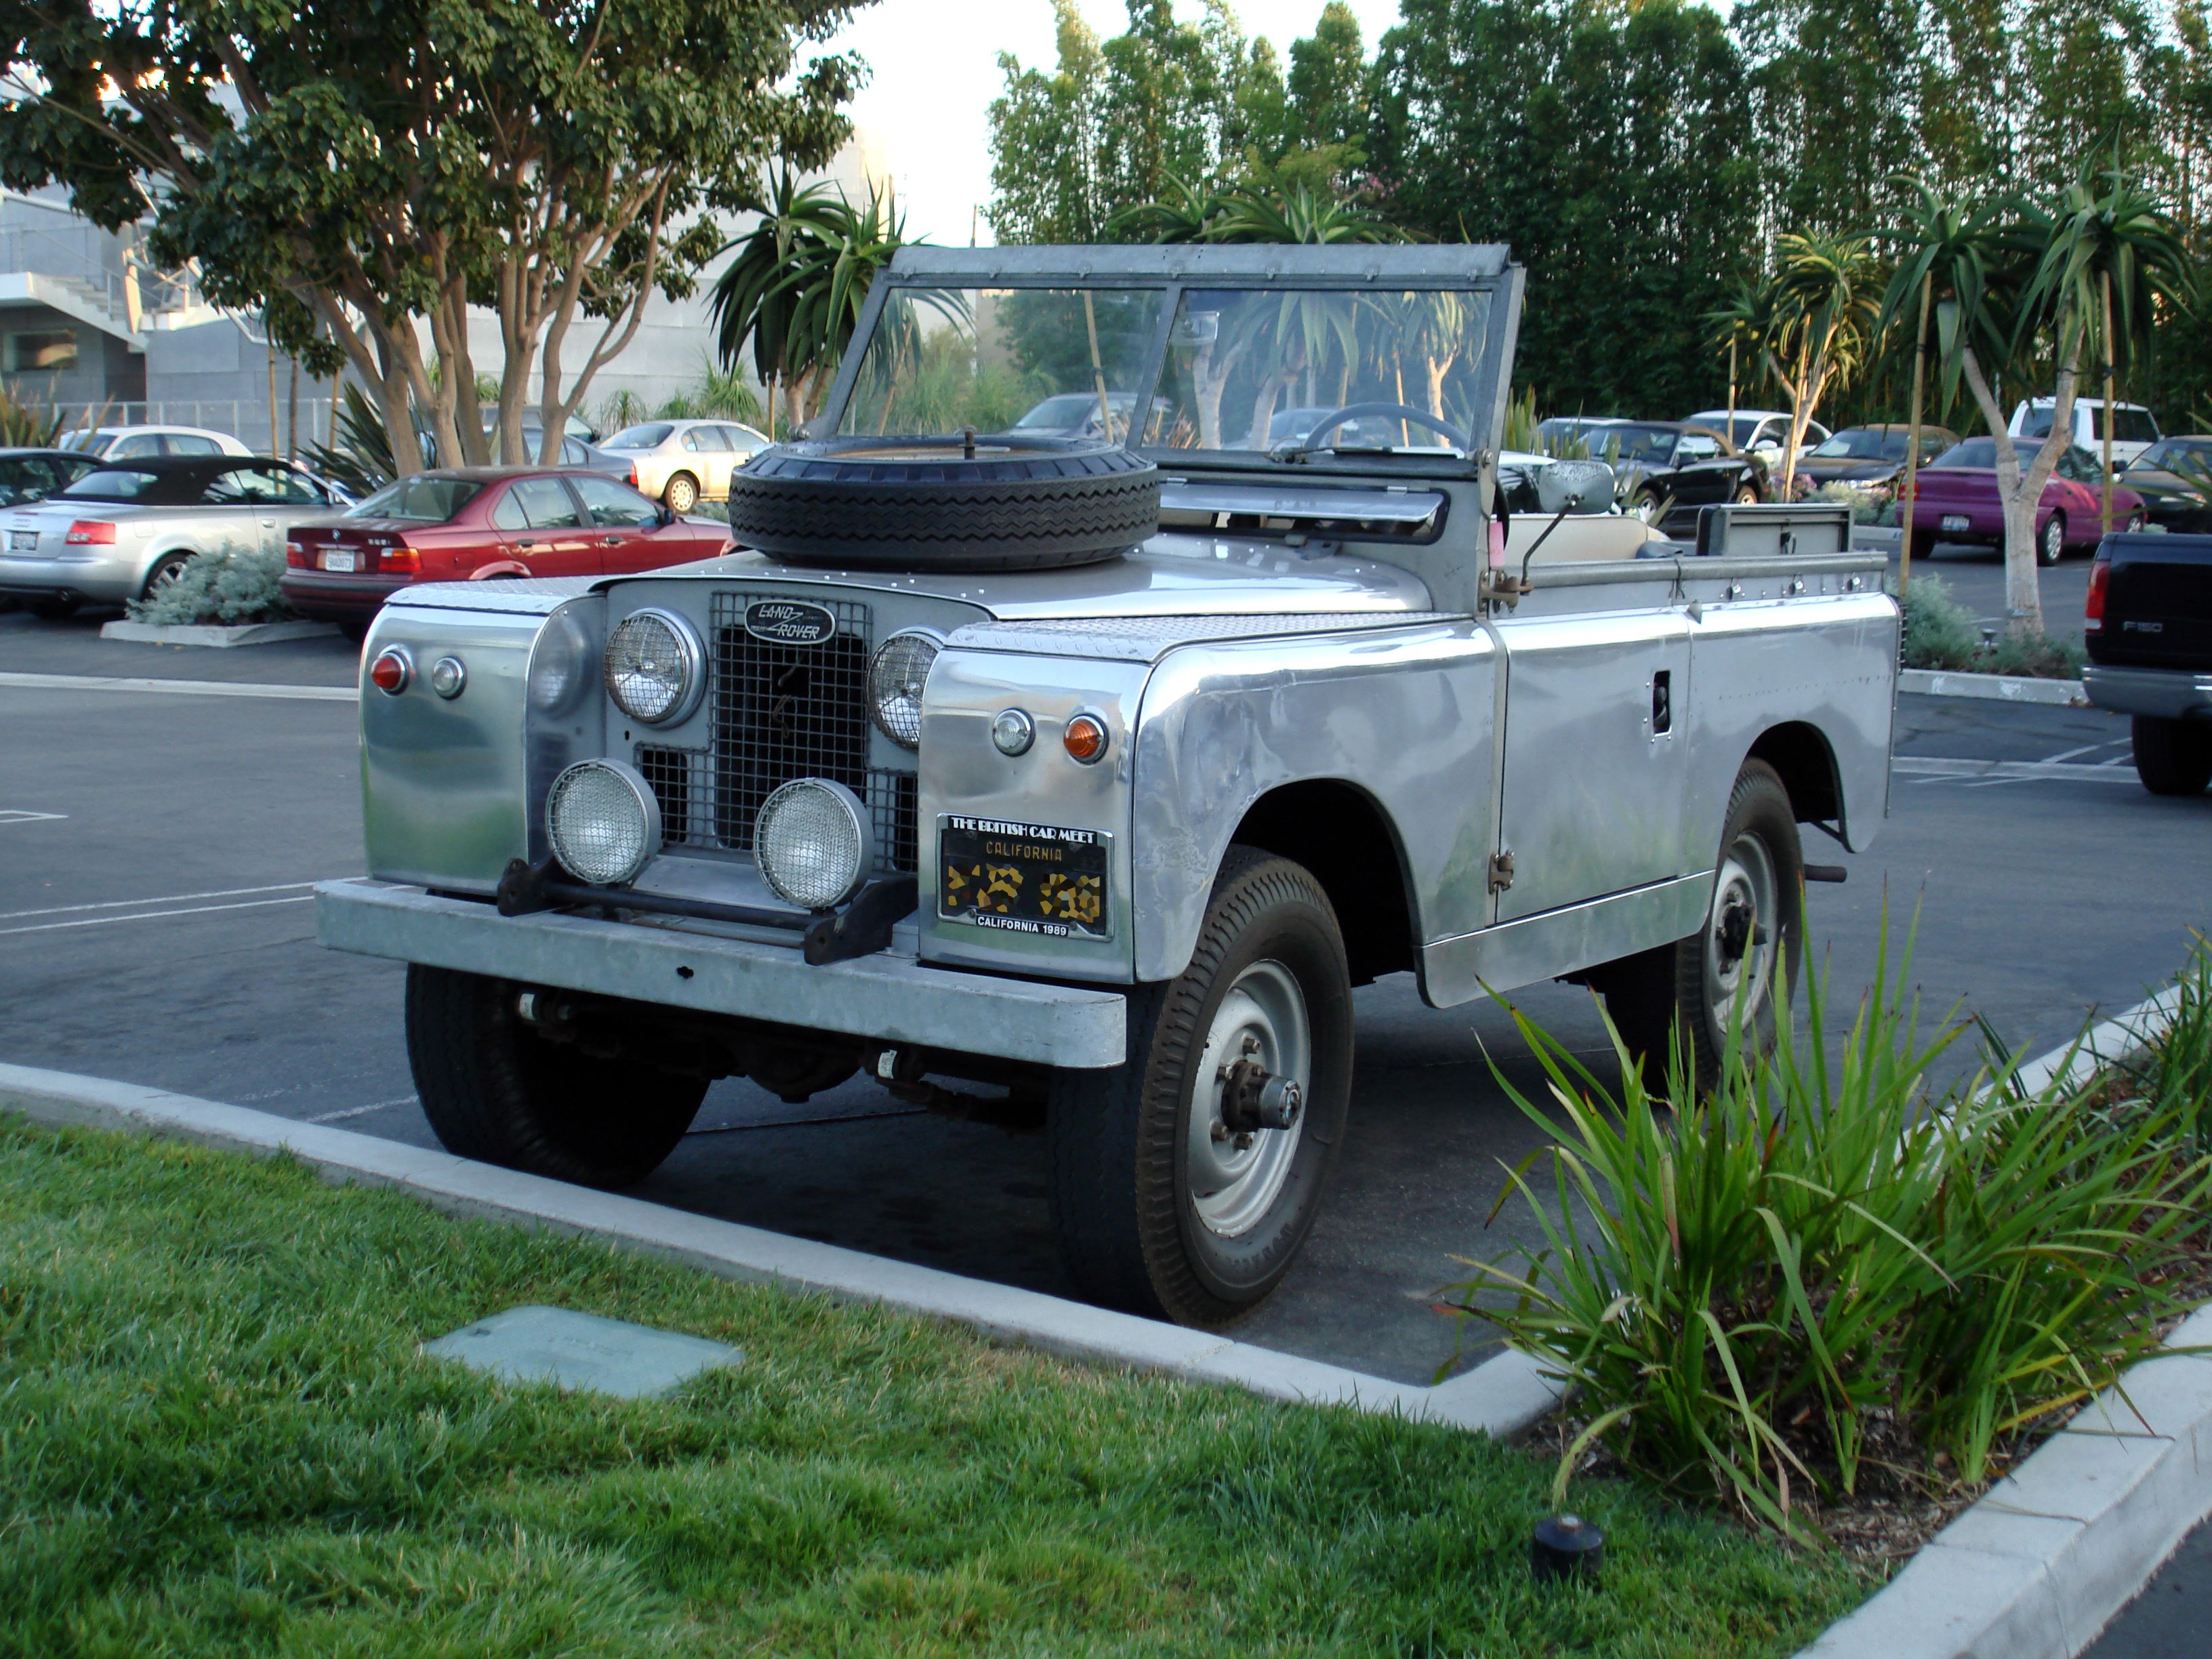 Best 20 land rover hse ideas on pinterest no signup required range rover hse rover ranger and range rover service